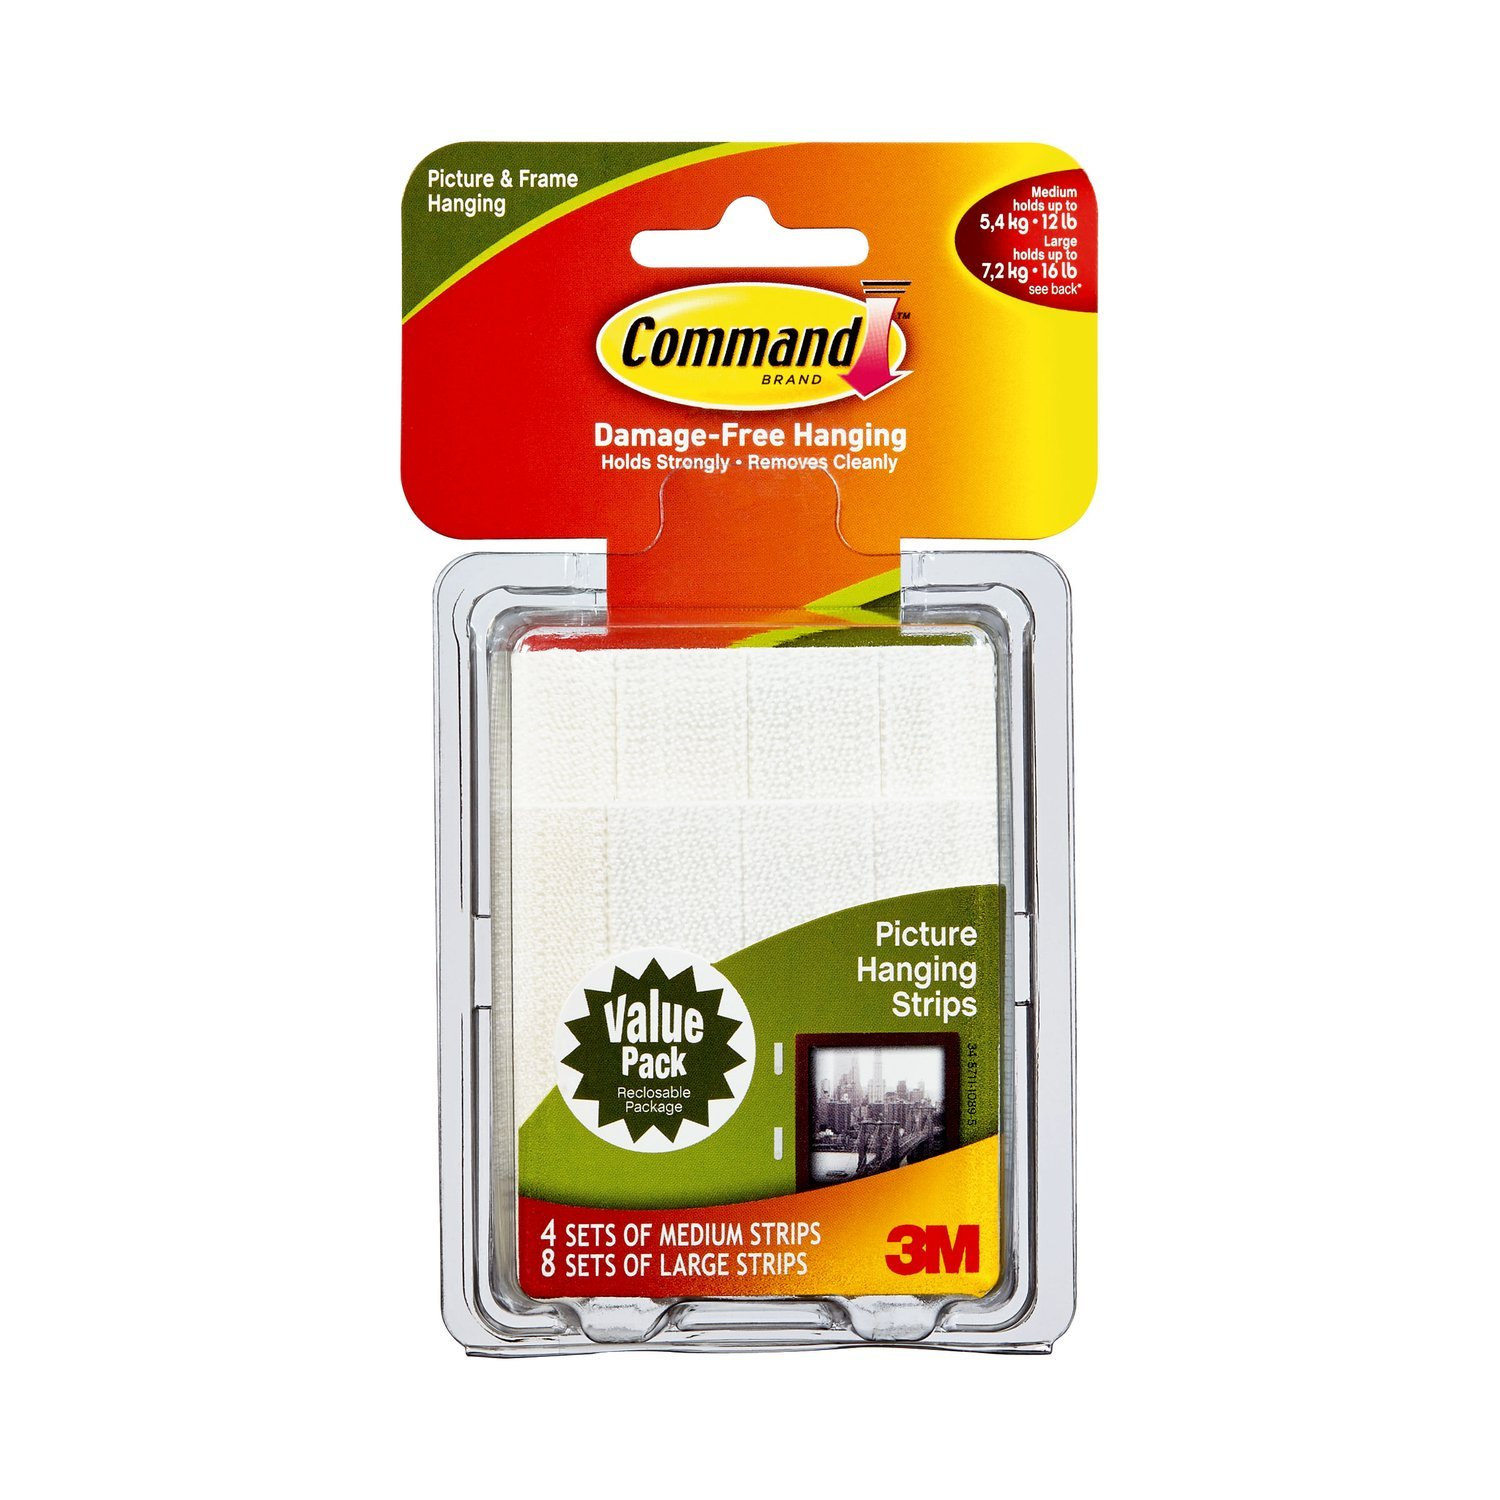 3M Command Picture Hanging Strips Value Pack (Large)